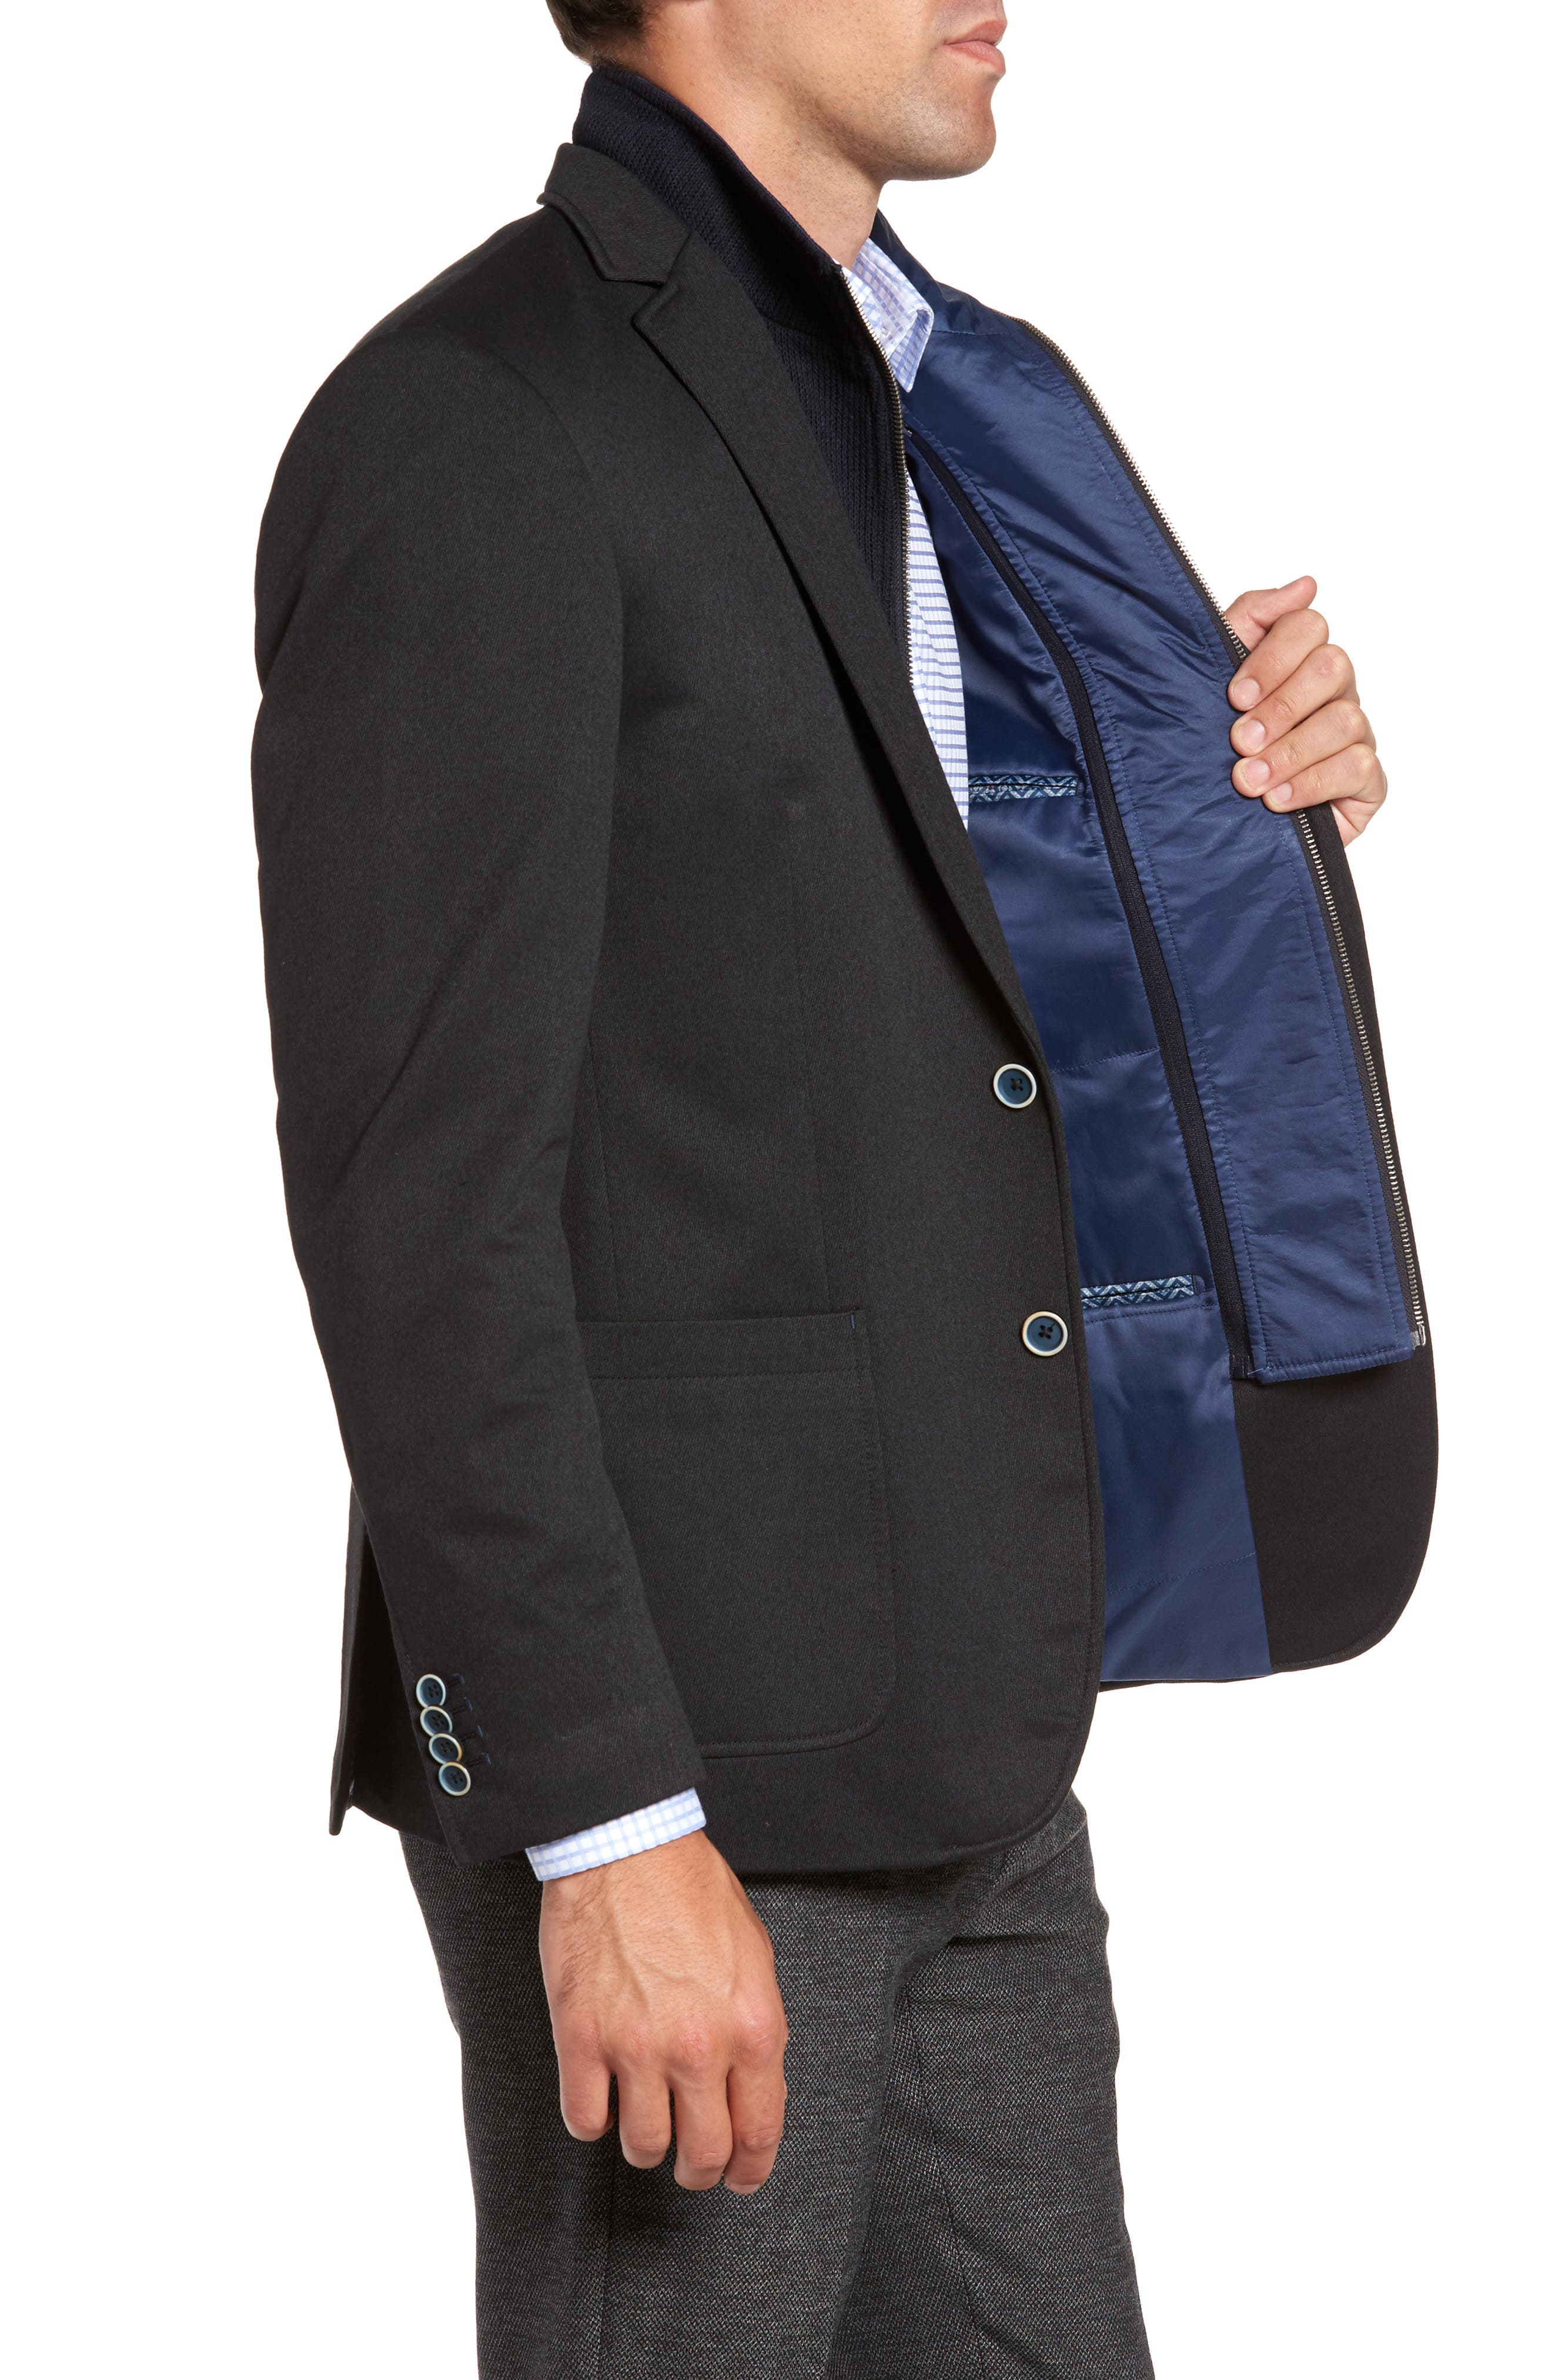 Broderick Technical Outerwear Jacket with Detachable Knit Bib,                             Alternate thumbnail 3, color,                             Navy